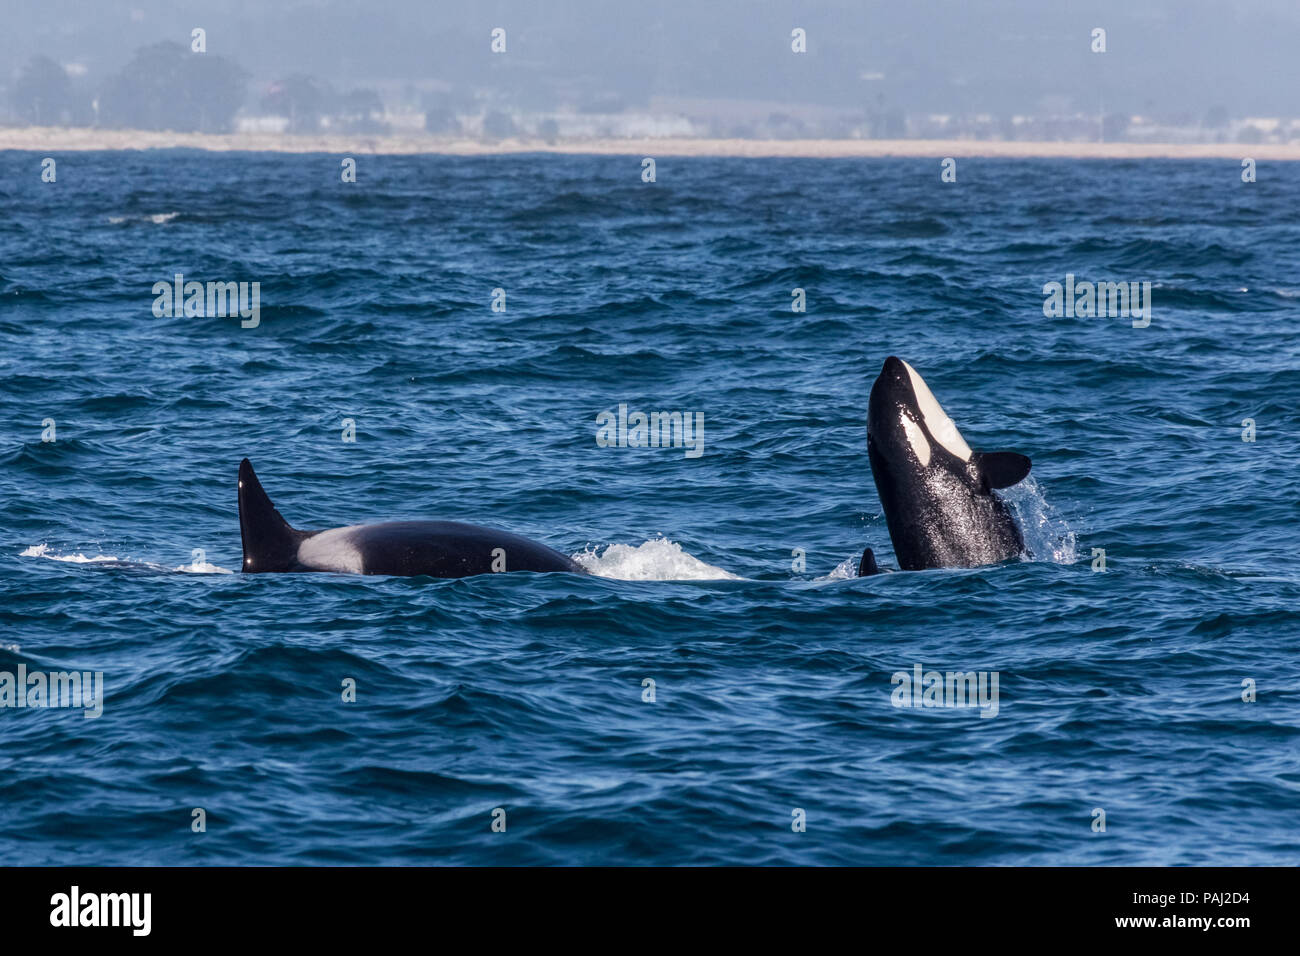 Whales in the Monterey Bay California - Stock Image